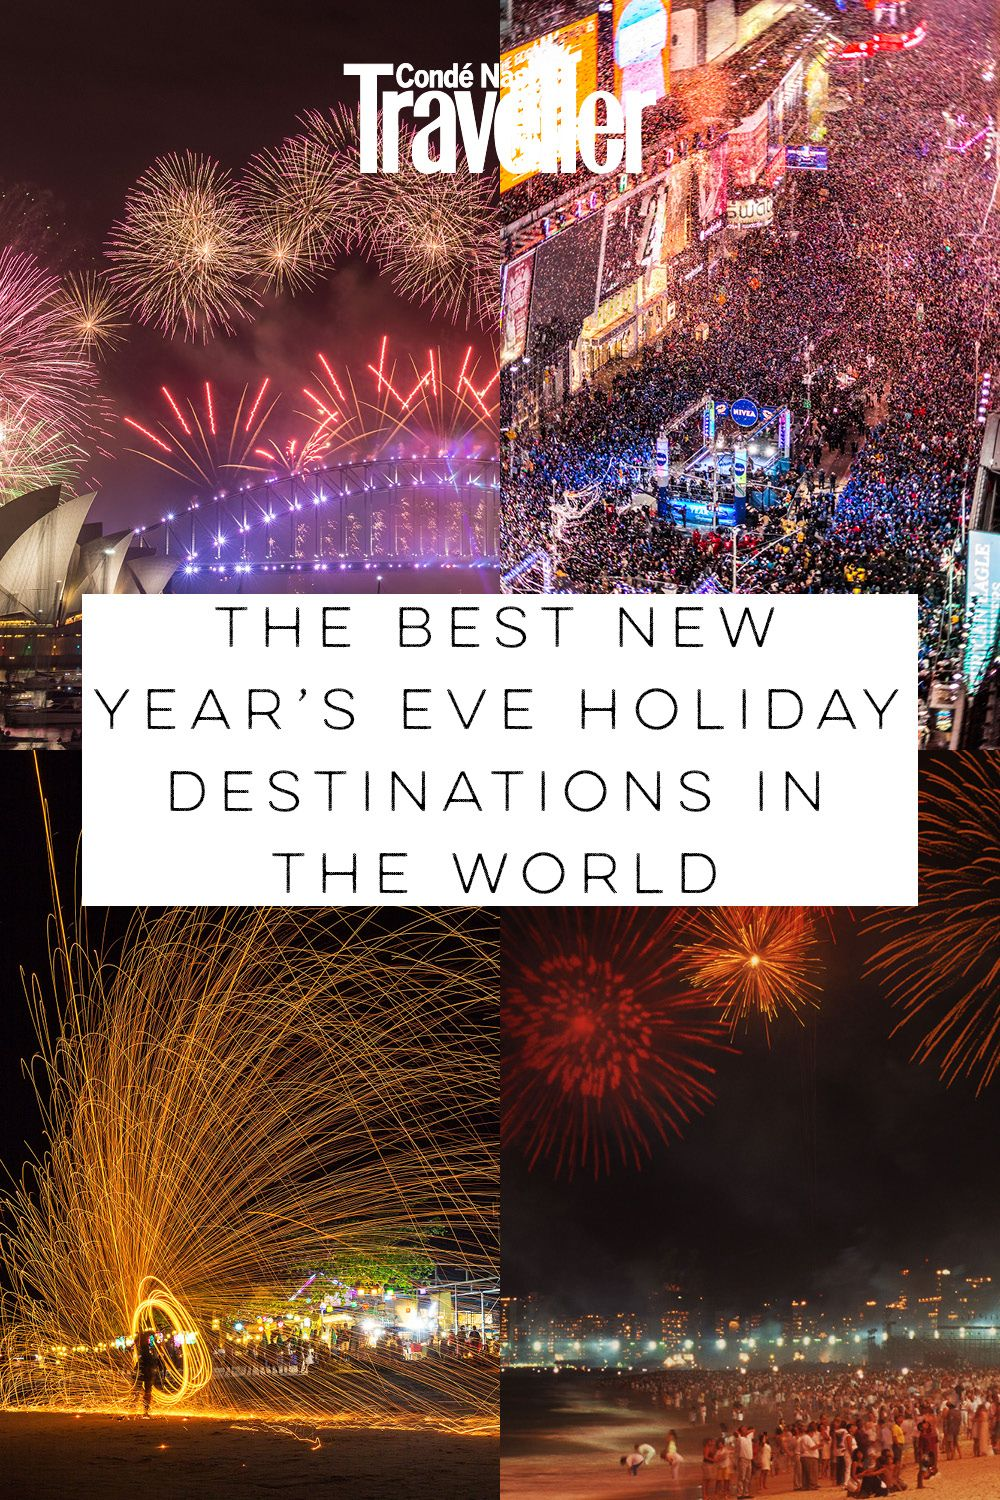 The best New Year's Eve holiday destinations around the